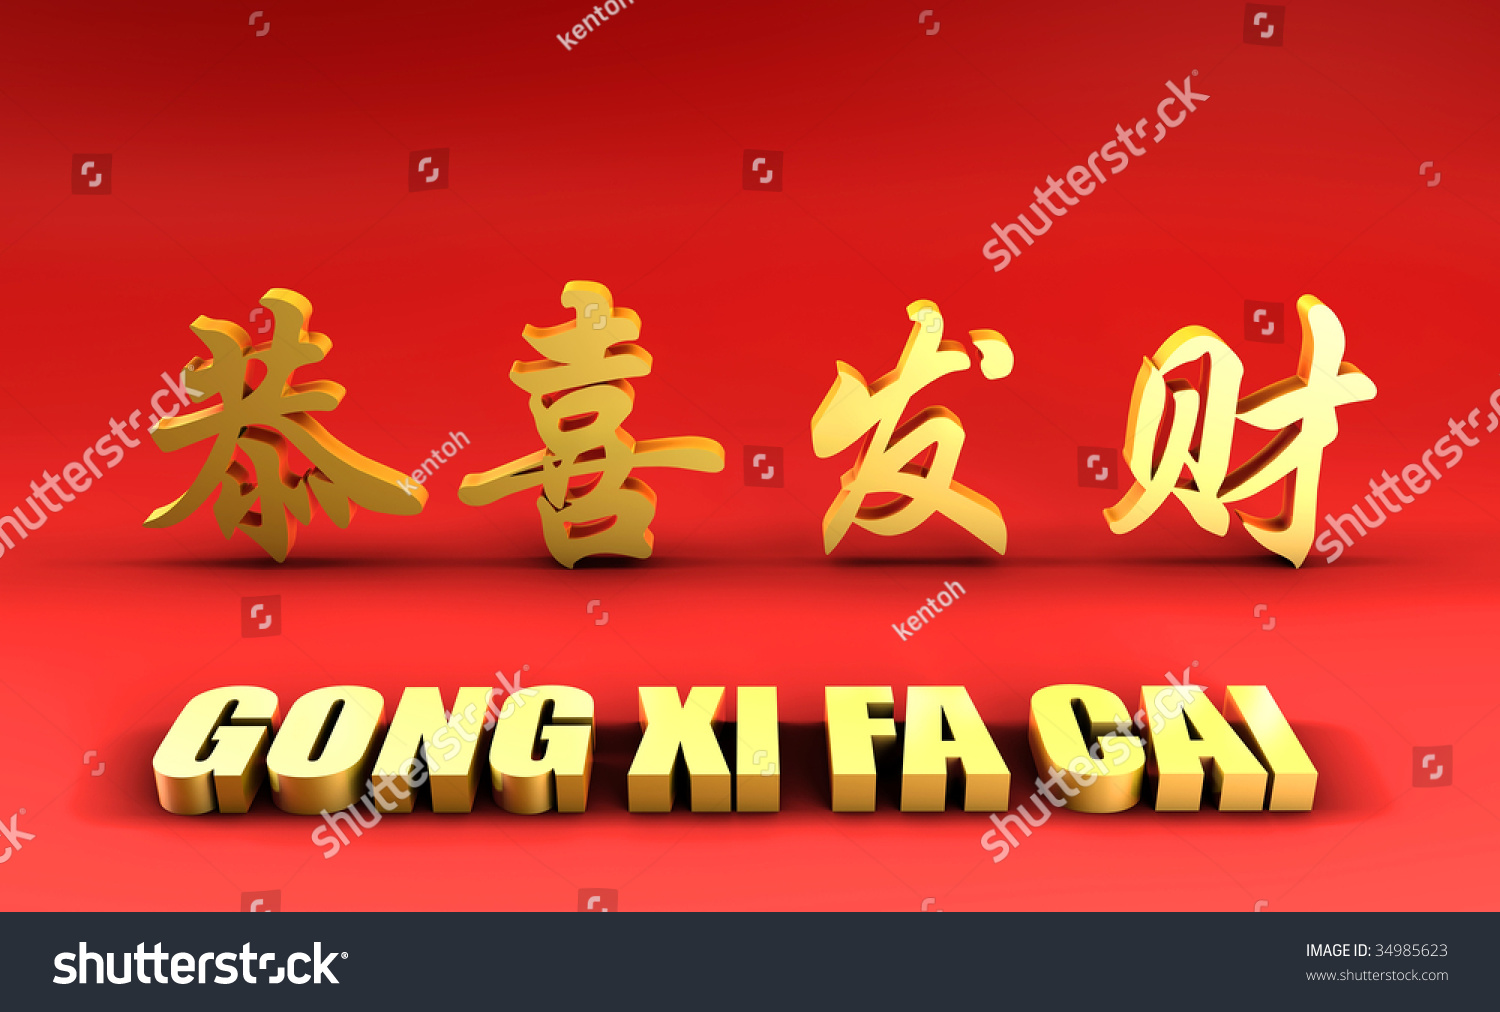 chinese lunar new year greeting card in 3d gold - Chinese Lunar New Year